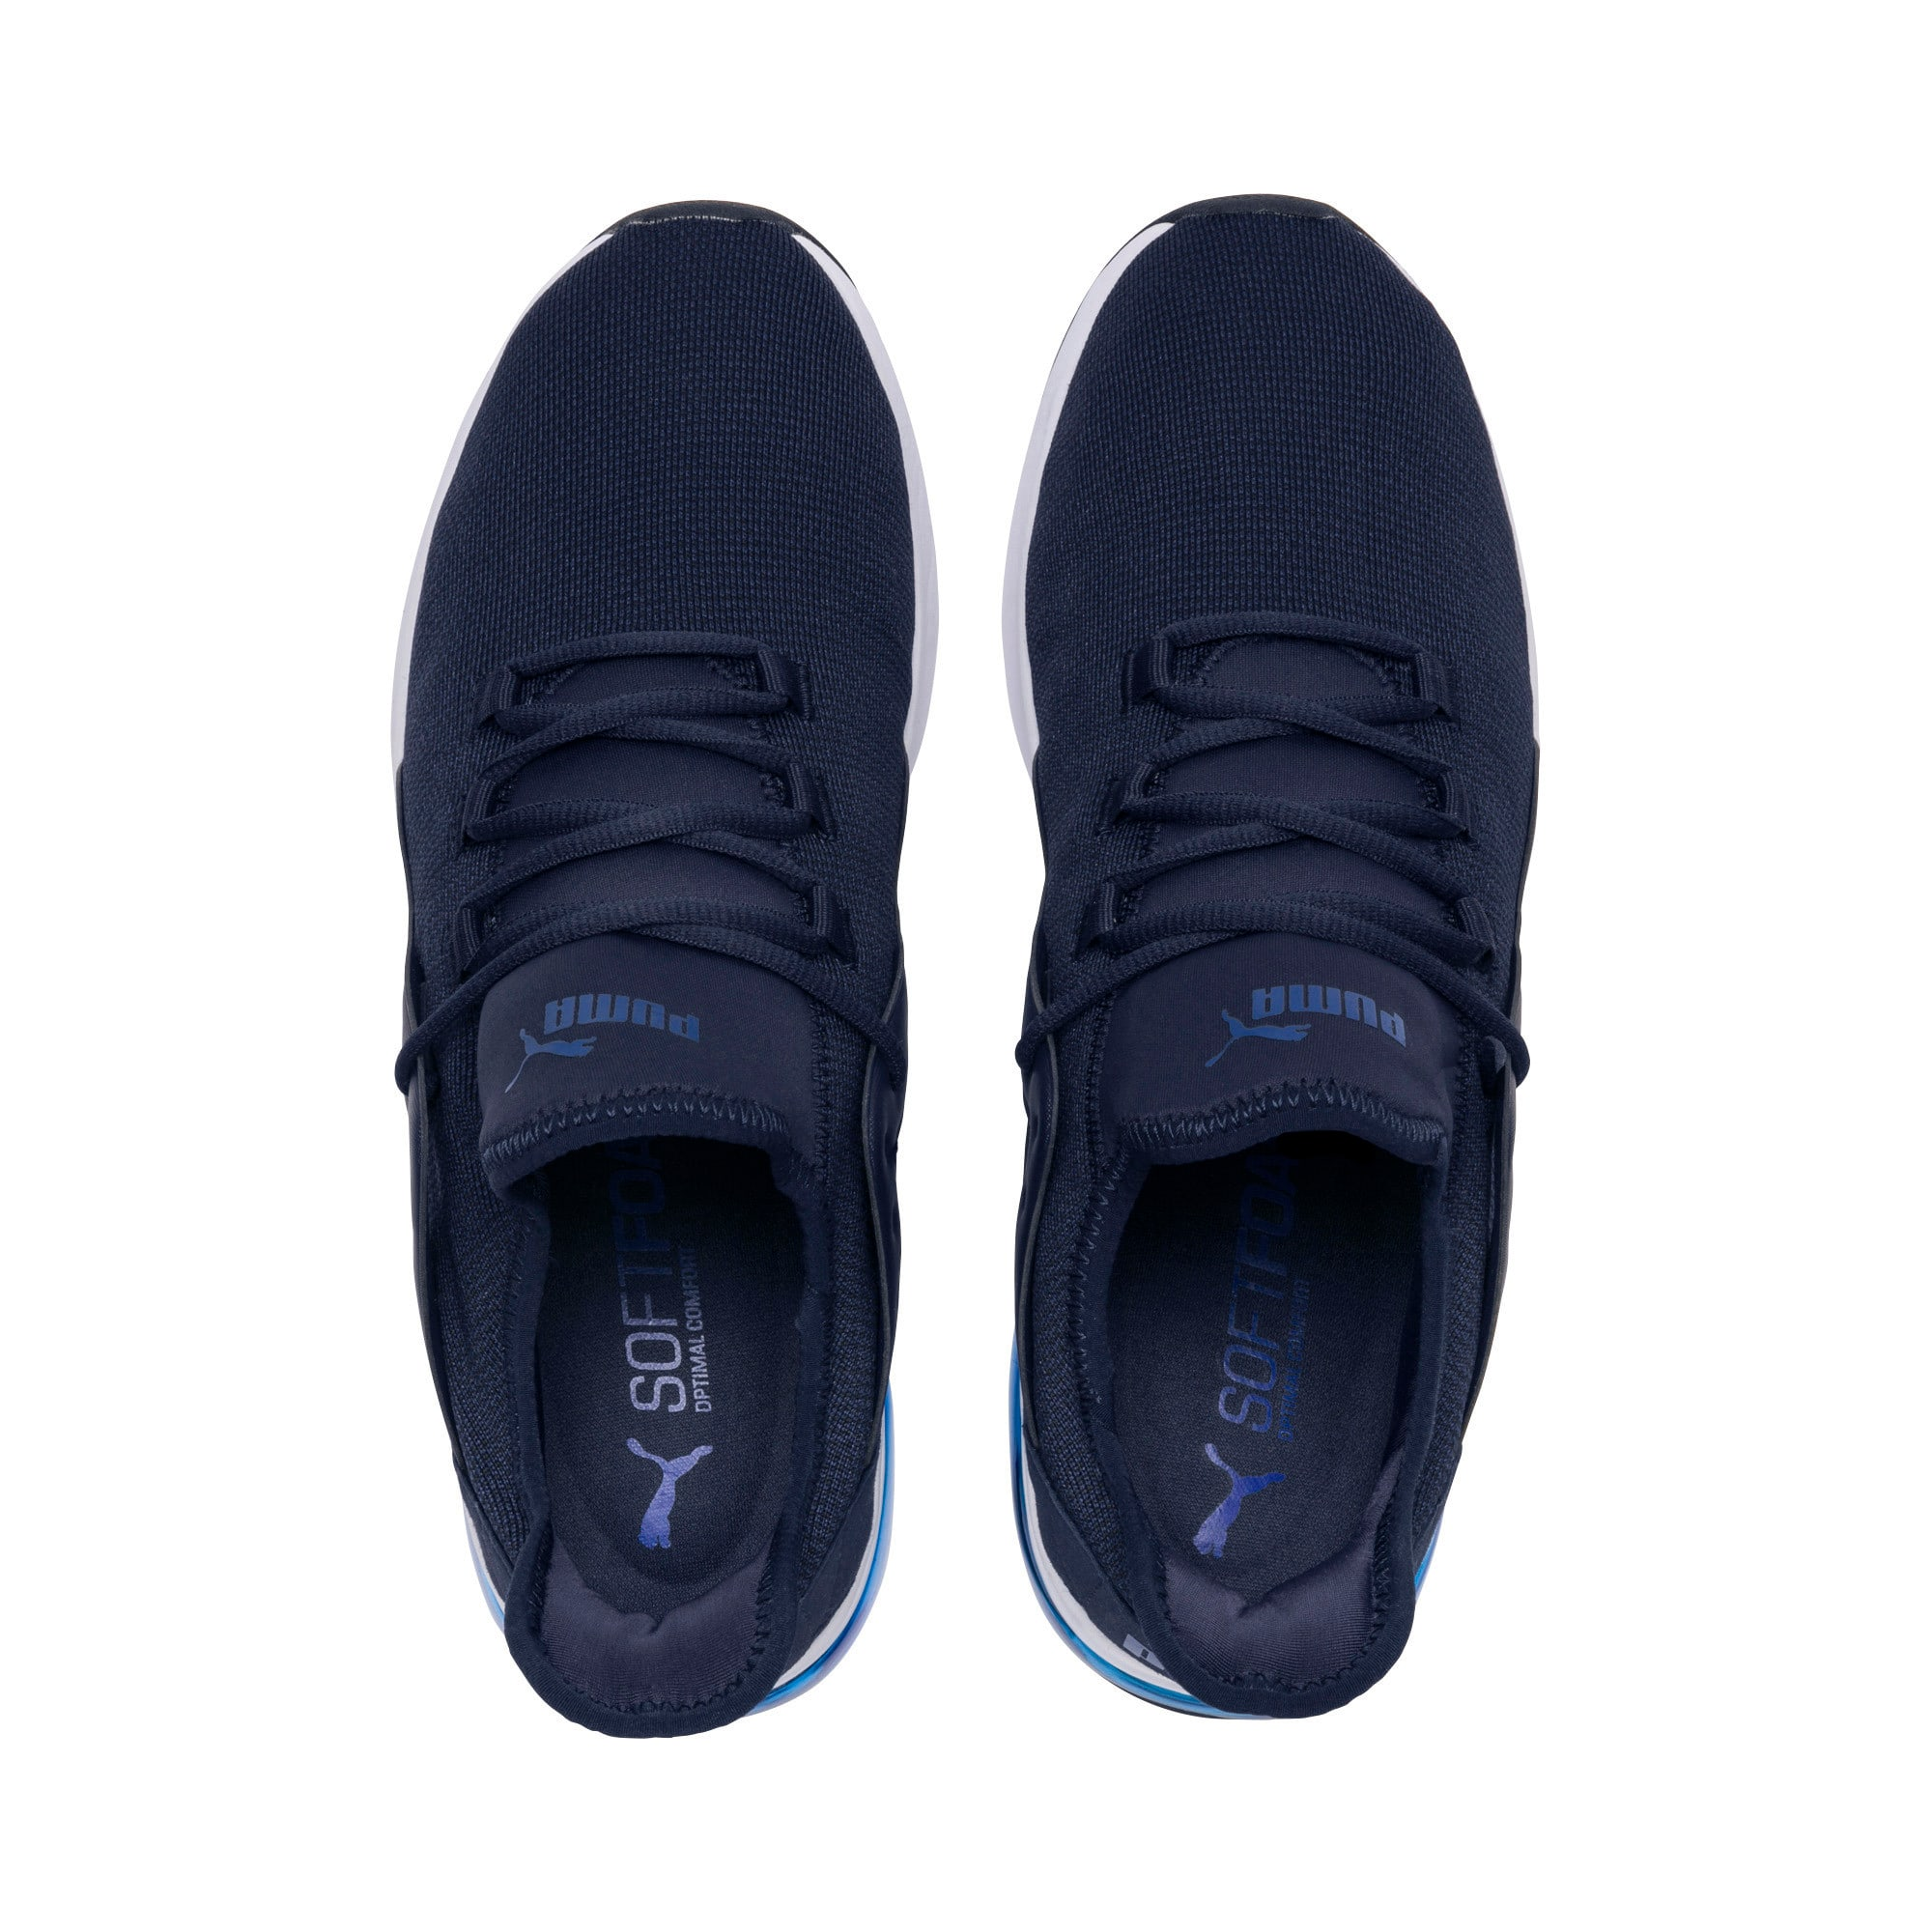 Thumbnail 6 of Electron Street Knit Trainers, Peacoat-Sodalite Blue, medium-IND